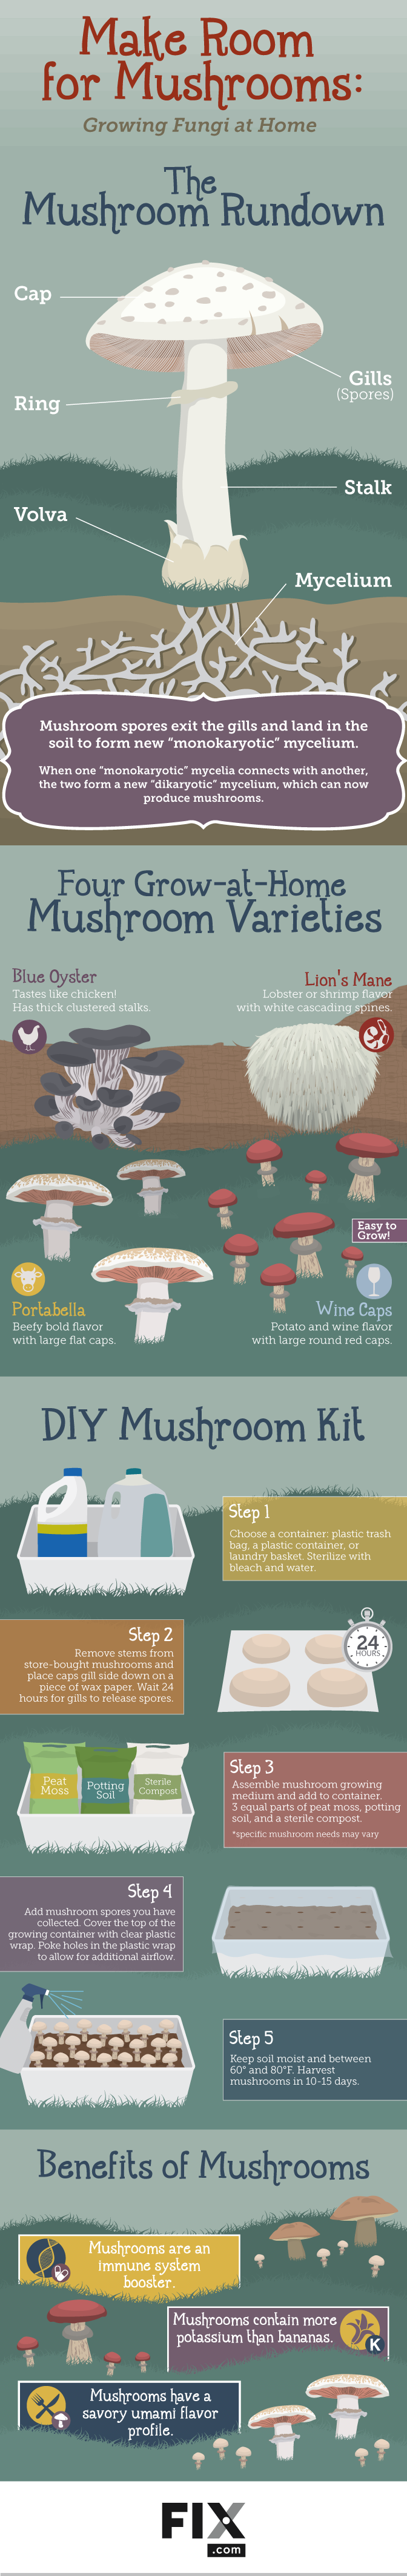 Make Room for Mushrooms Growing Fungi at Home